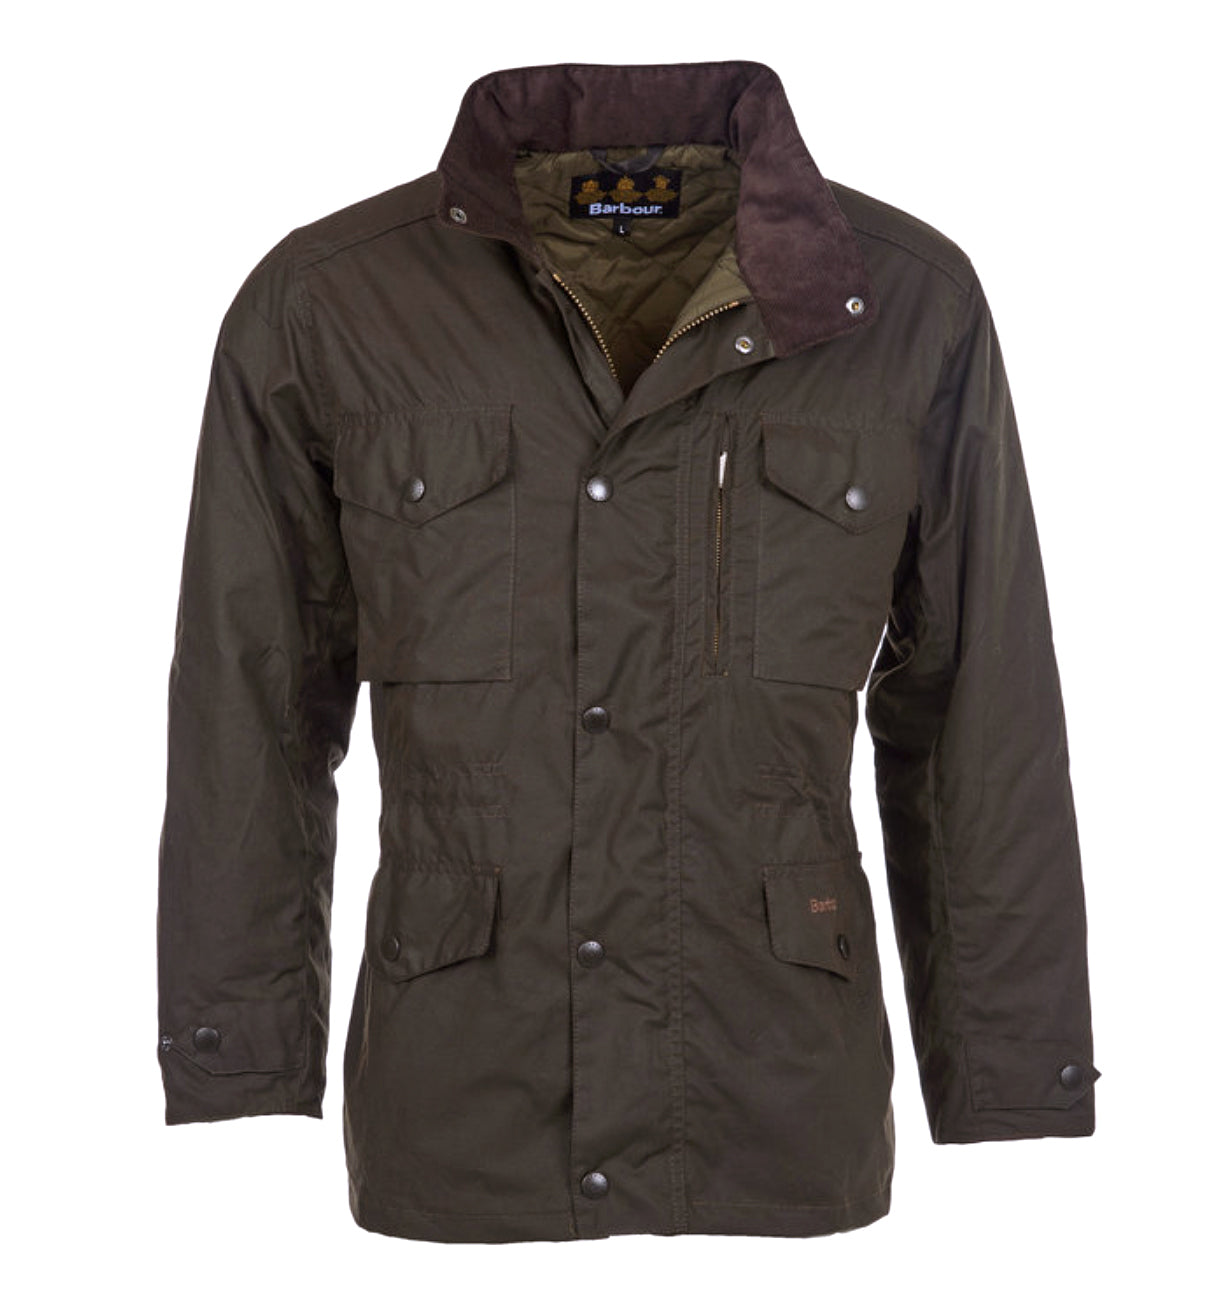 Barbour Sapper Waxed Jacket - North Shore Saddlery